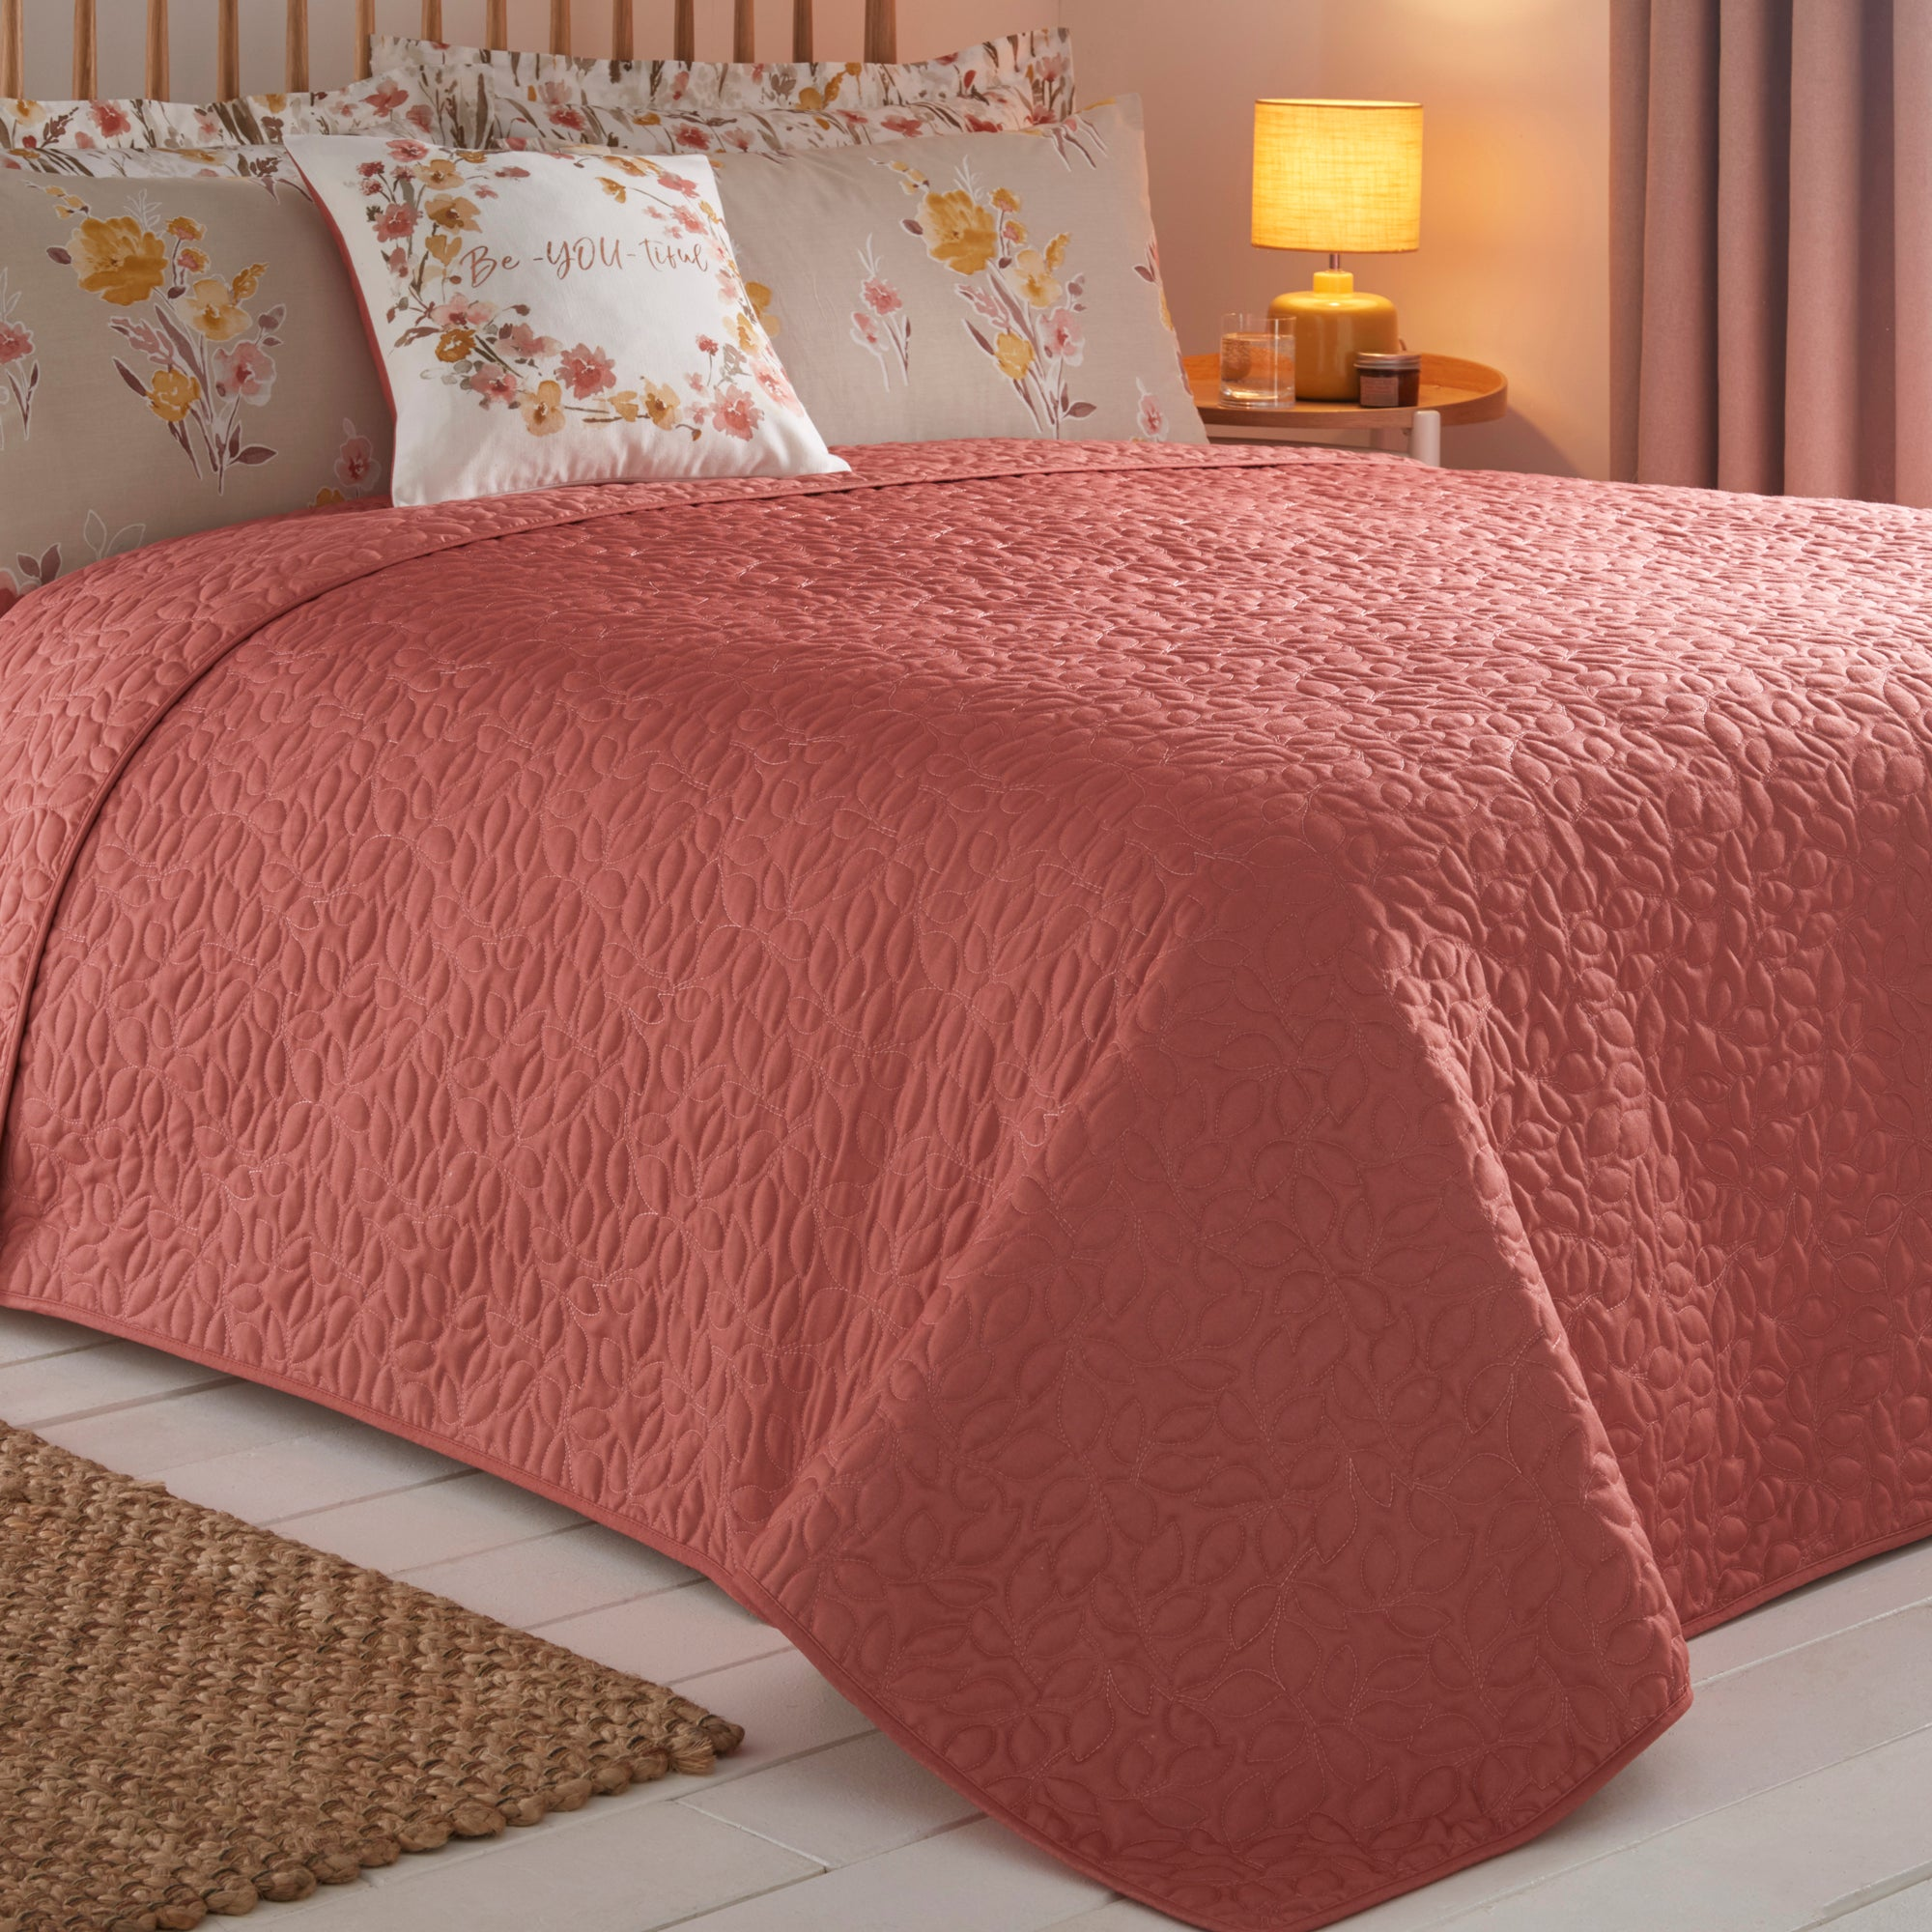 Photo of Amber terracotta bedspread terracotta